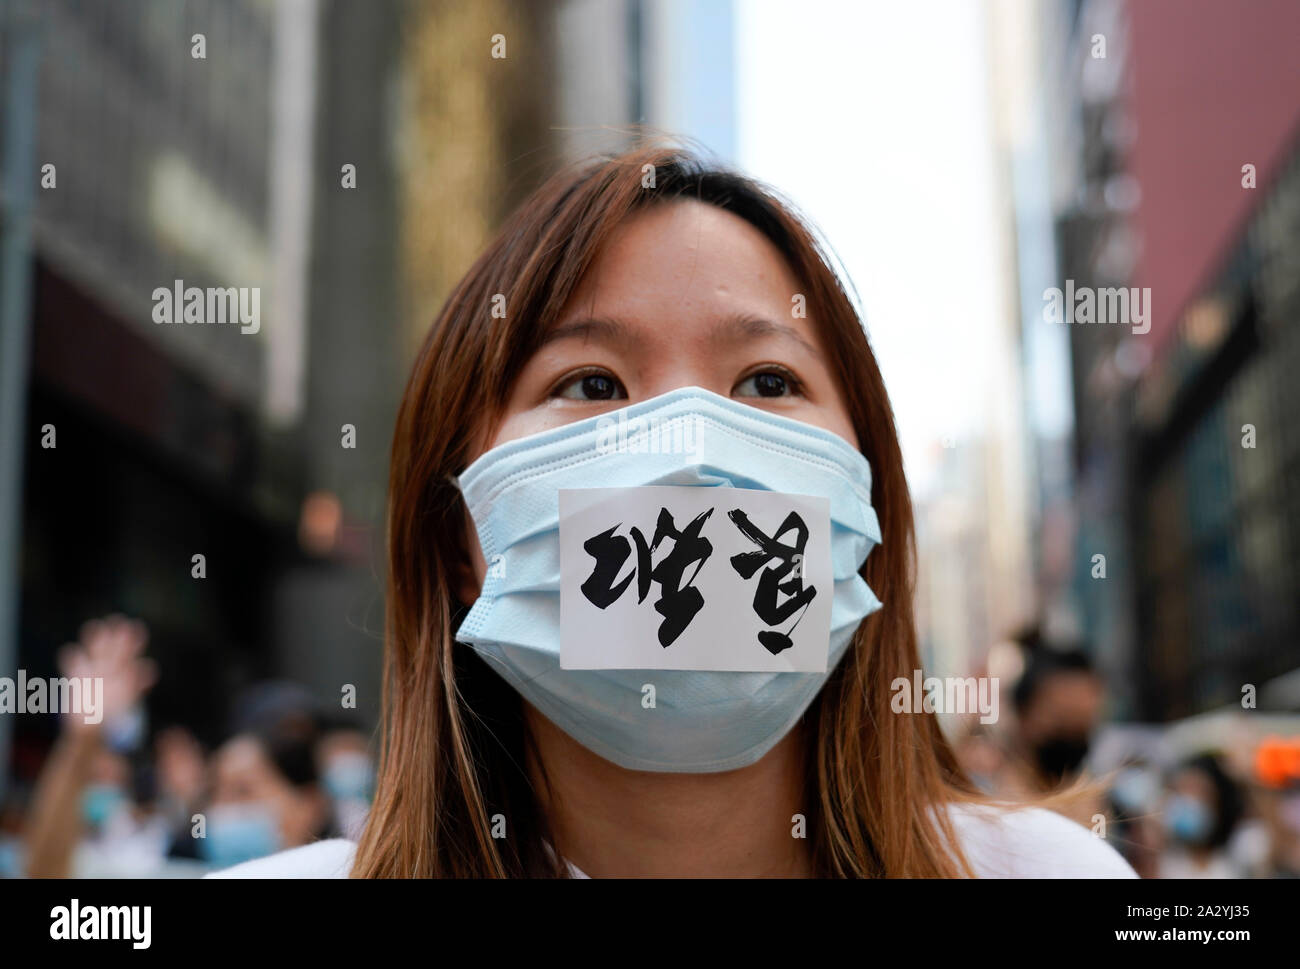 Hong Kong. 4 October 2019. Large peaceful march by thousands of pro-democracy supporters through Central business district of Hong Kong this afternoon. March was in protest against Chief Executive Carrie Lam's use of Emergency Powers to ban the wearing of masks during protests. Iain Masterton/Alamy Live News. Stock Photo